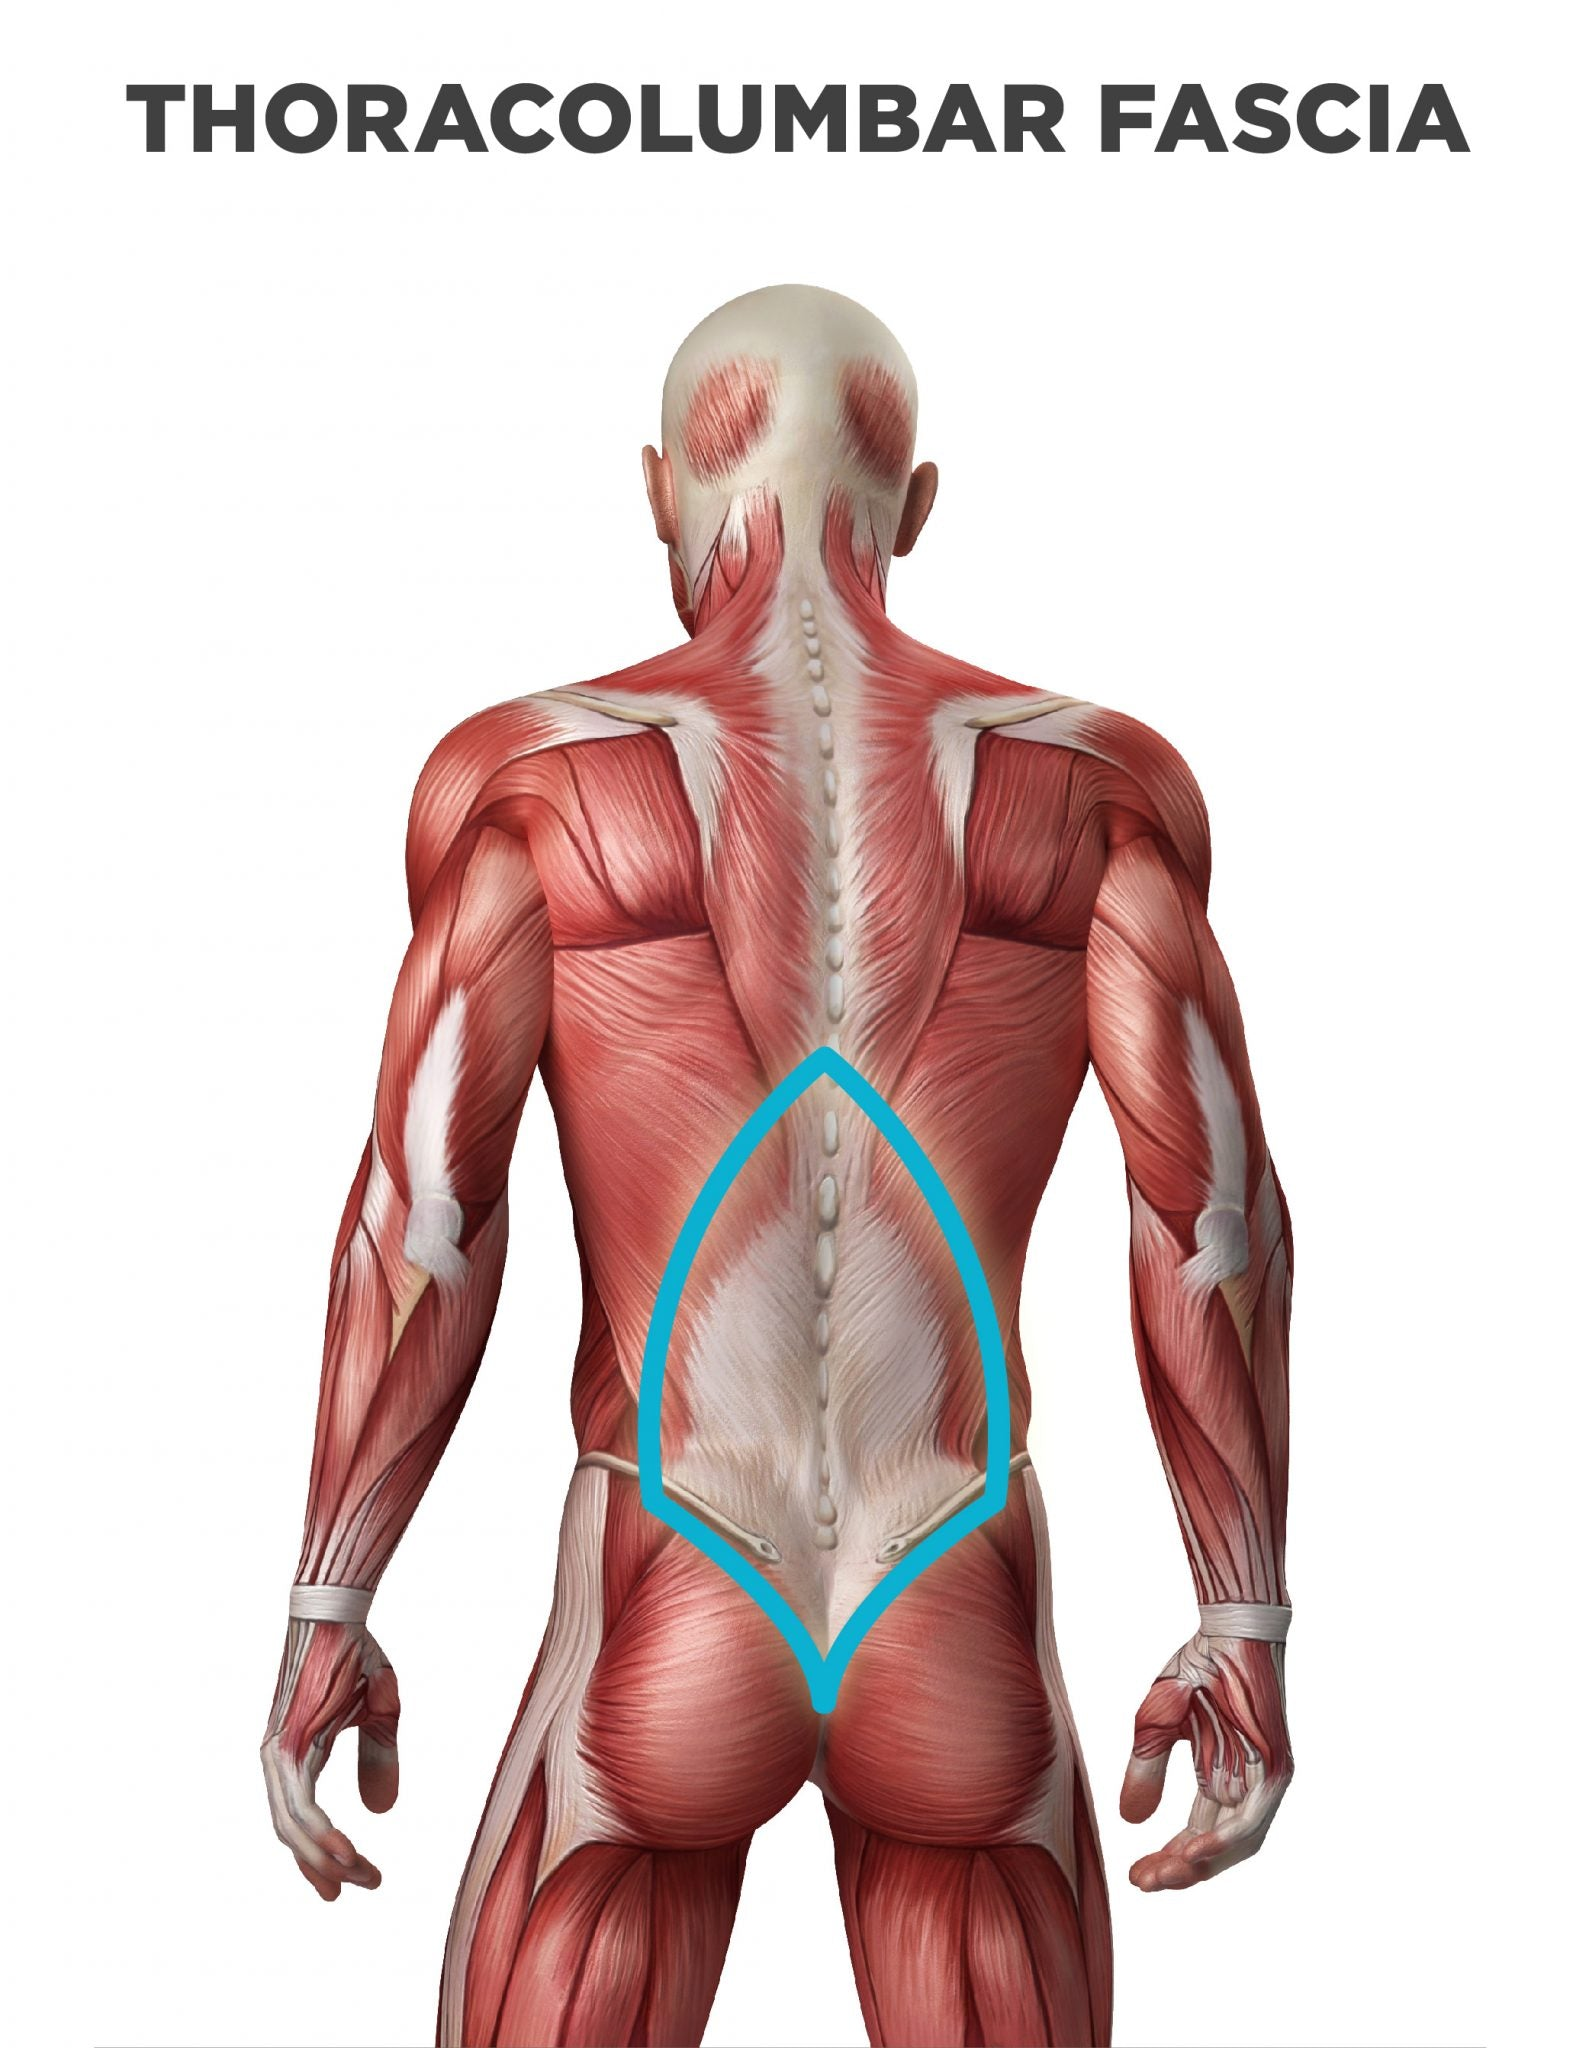 How to Remedy Thoracolumbar Fascia Back & Spine Pain